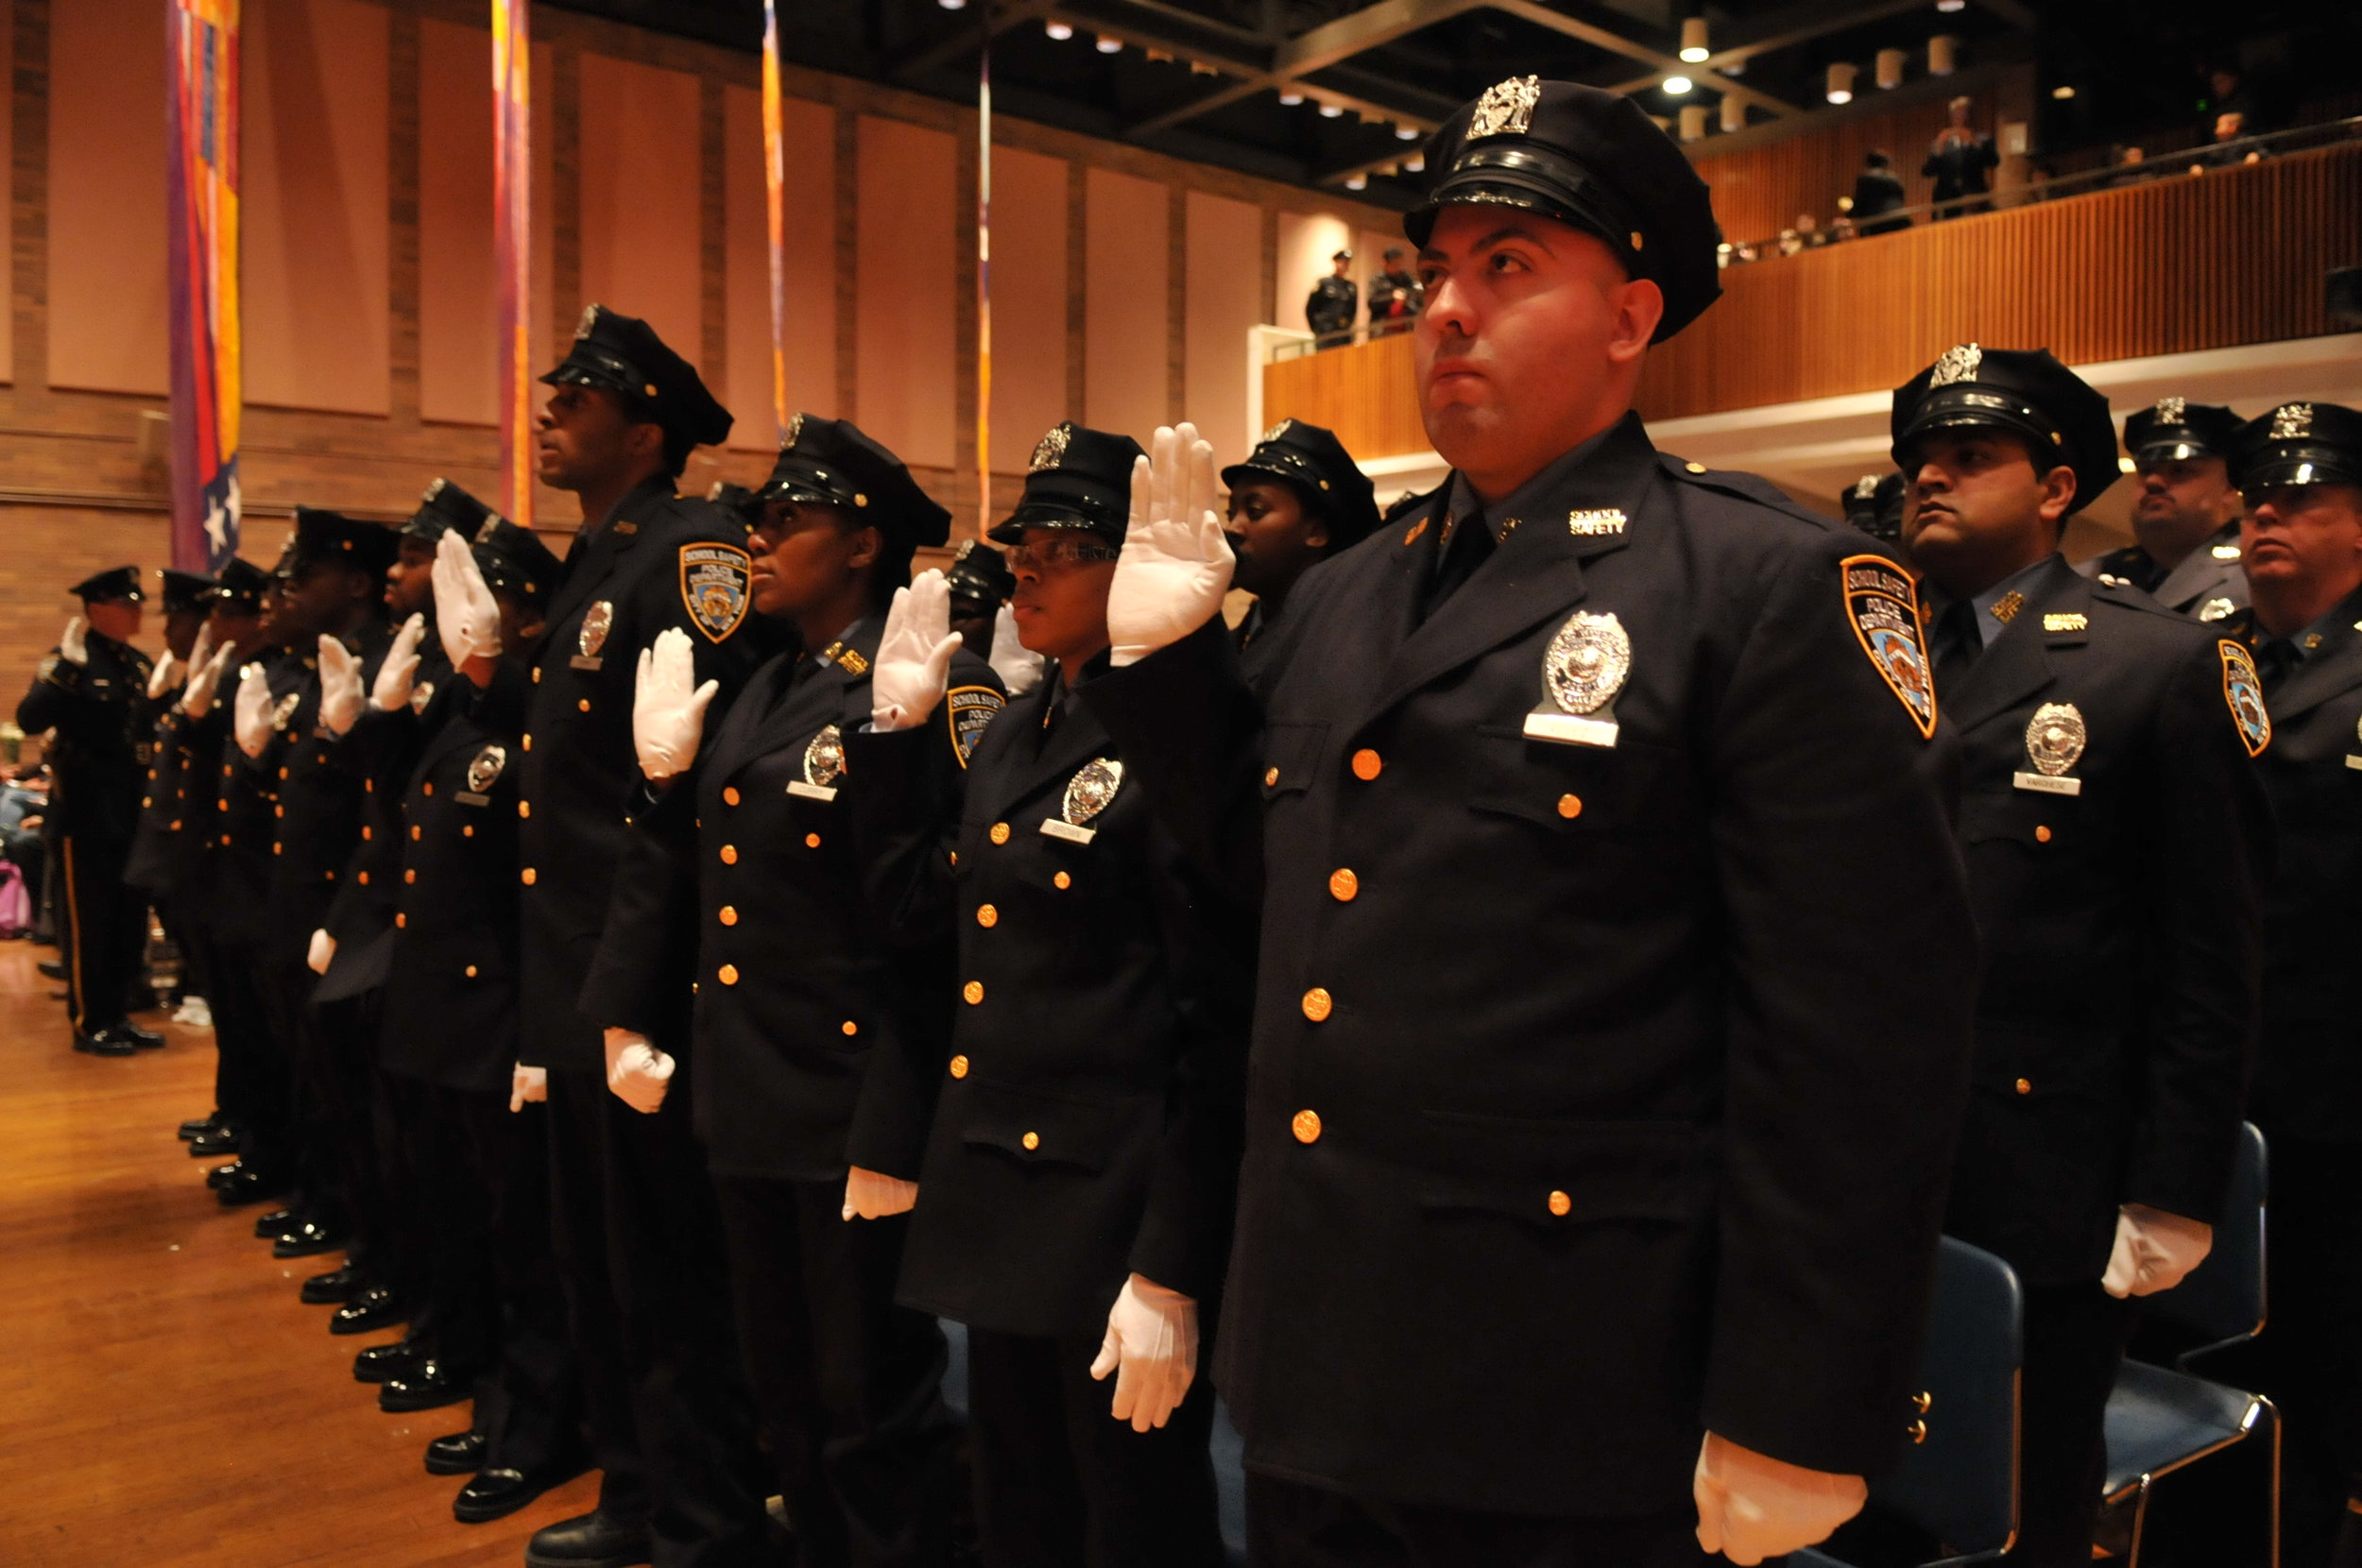 A class of NYPD School Safety Agents is sworn into service at a ceremony in Police Headquarters. Photo via nyc.gov.